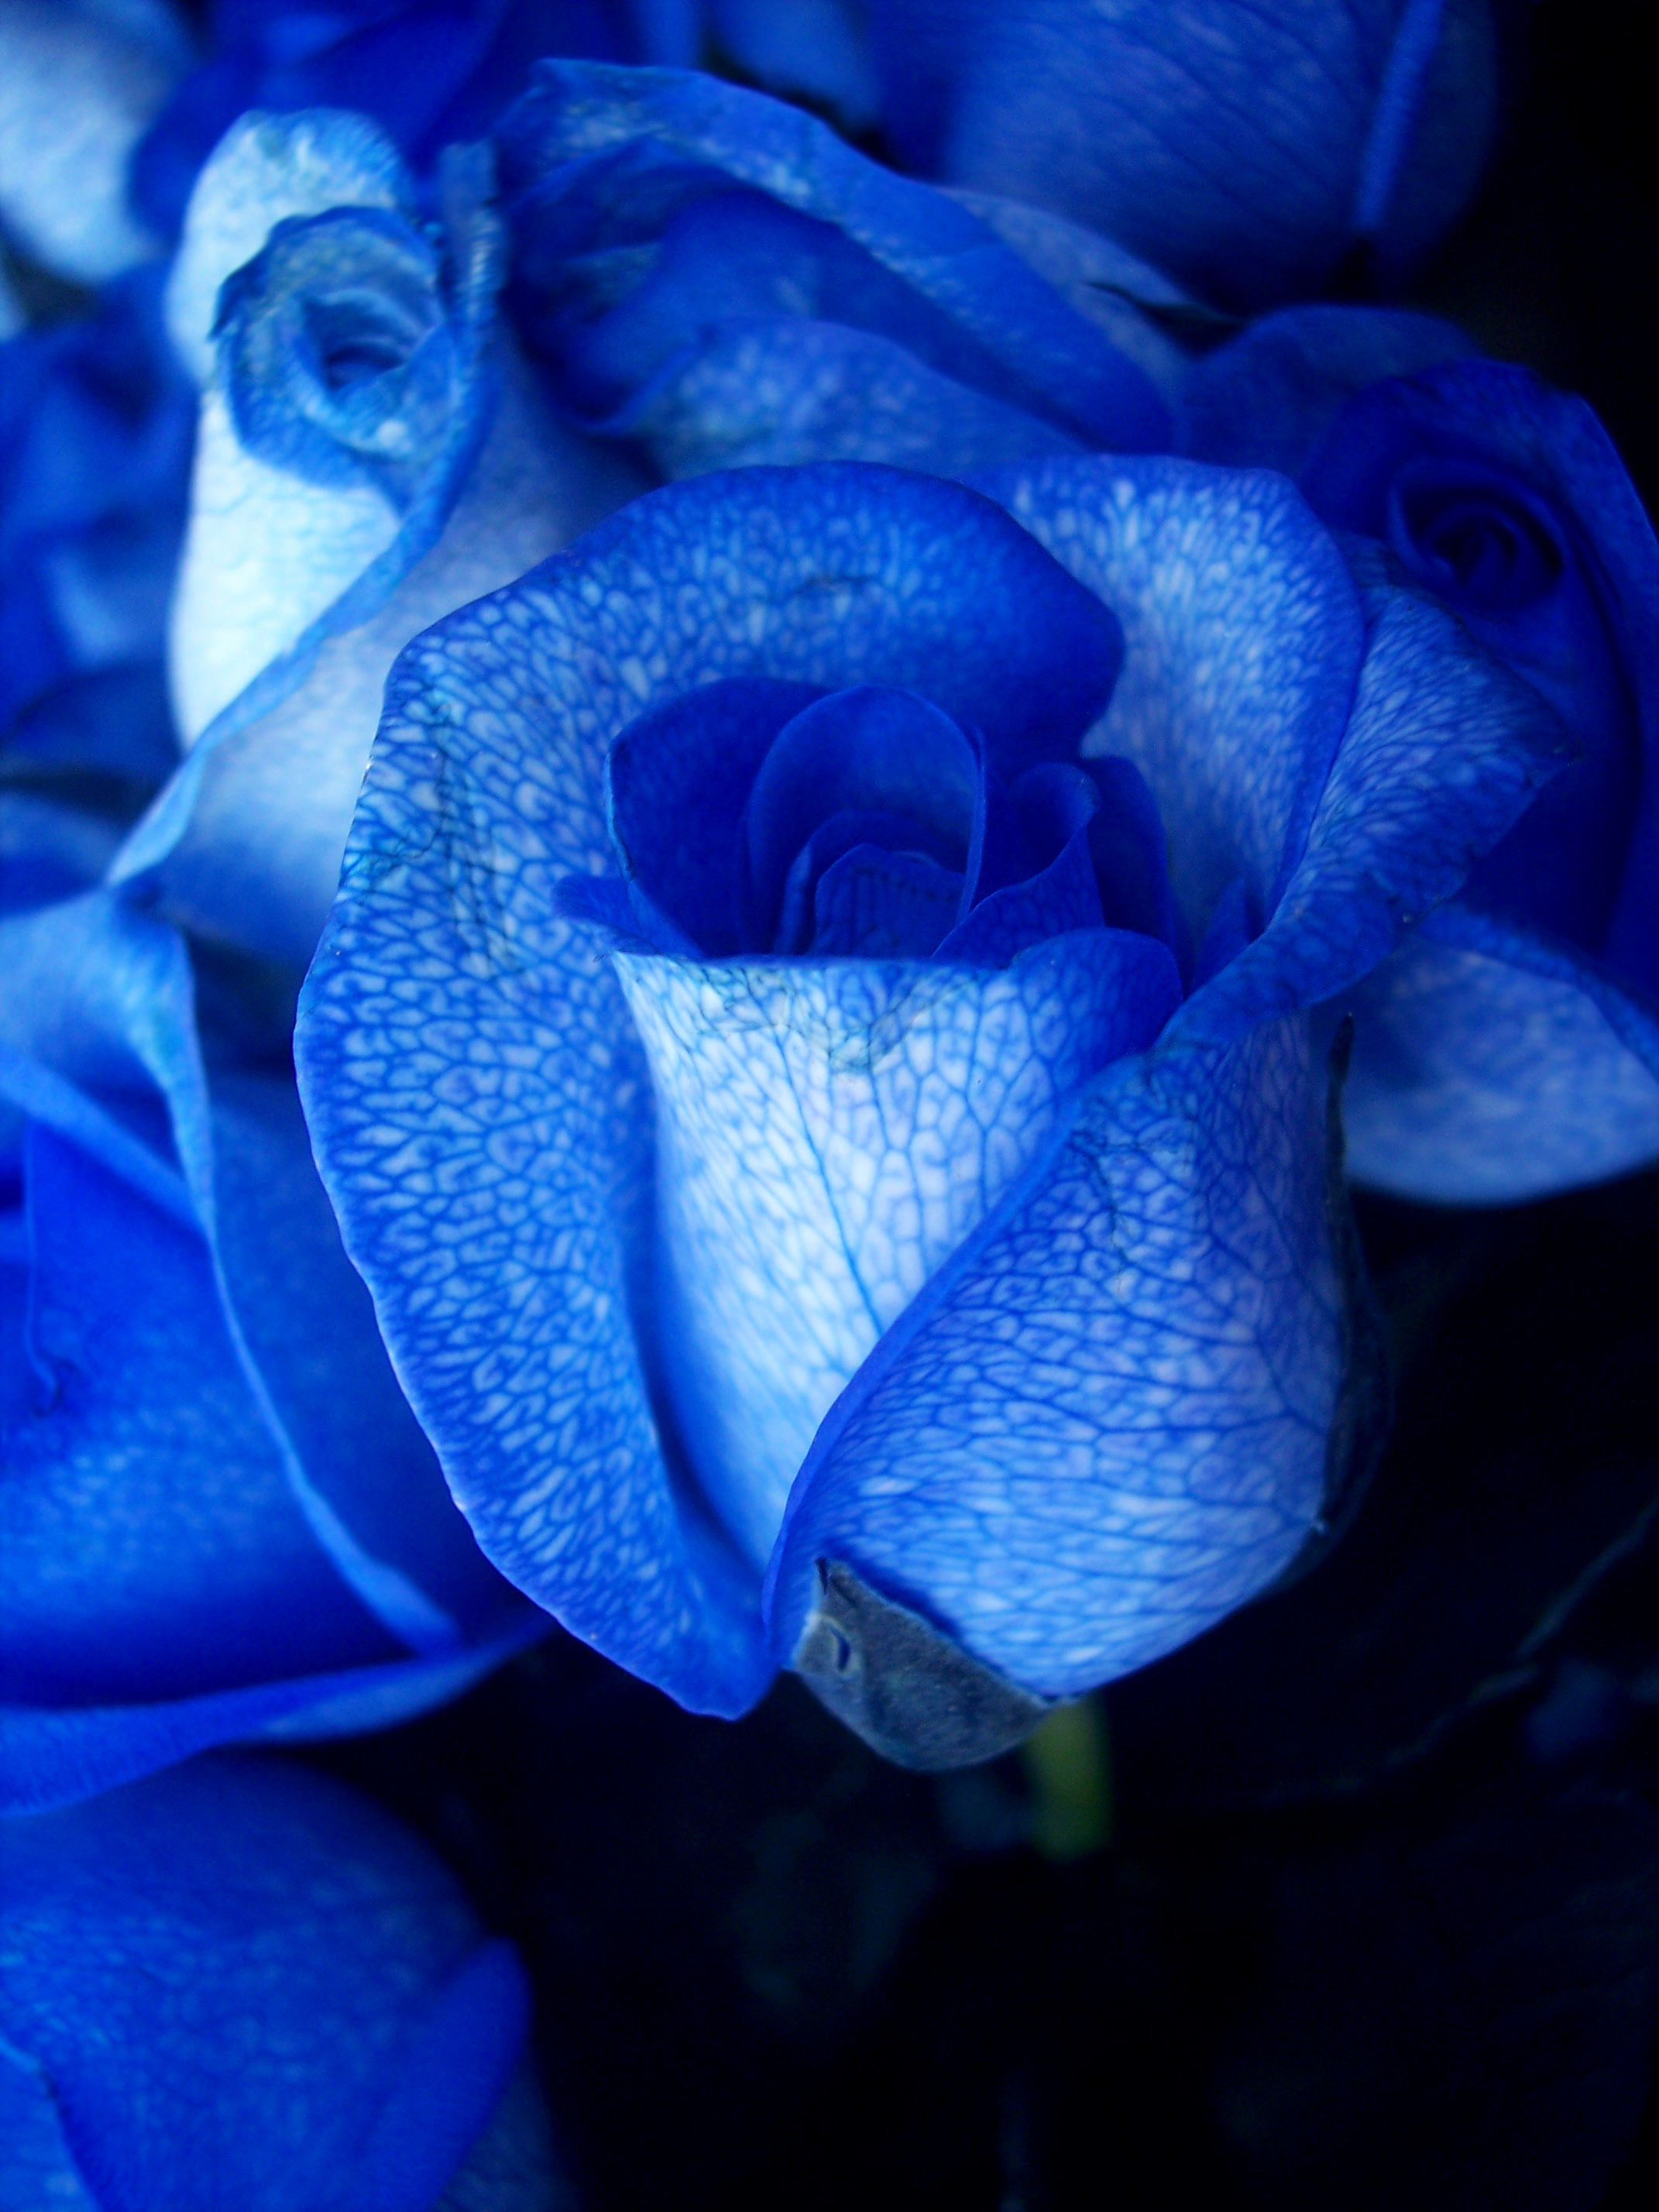 Rainbow roses background wallpapertag - Blue rose hd wallpaper download ...